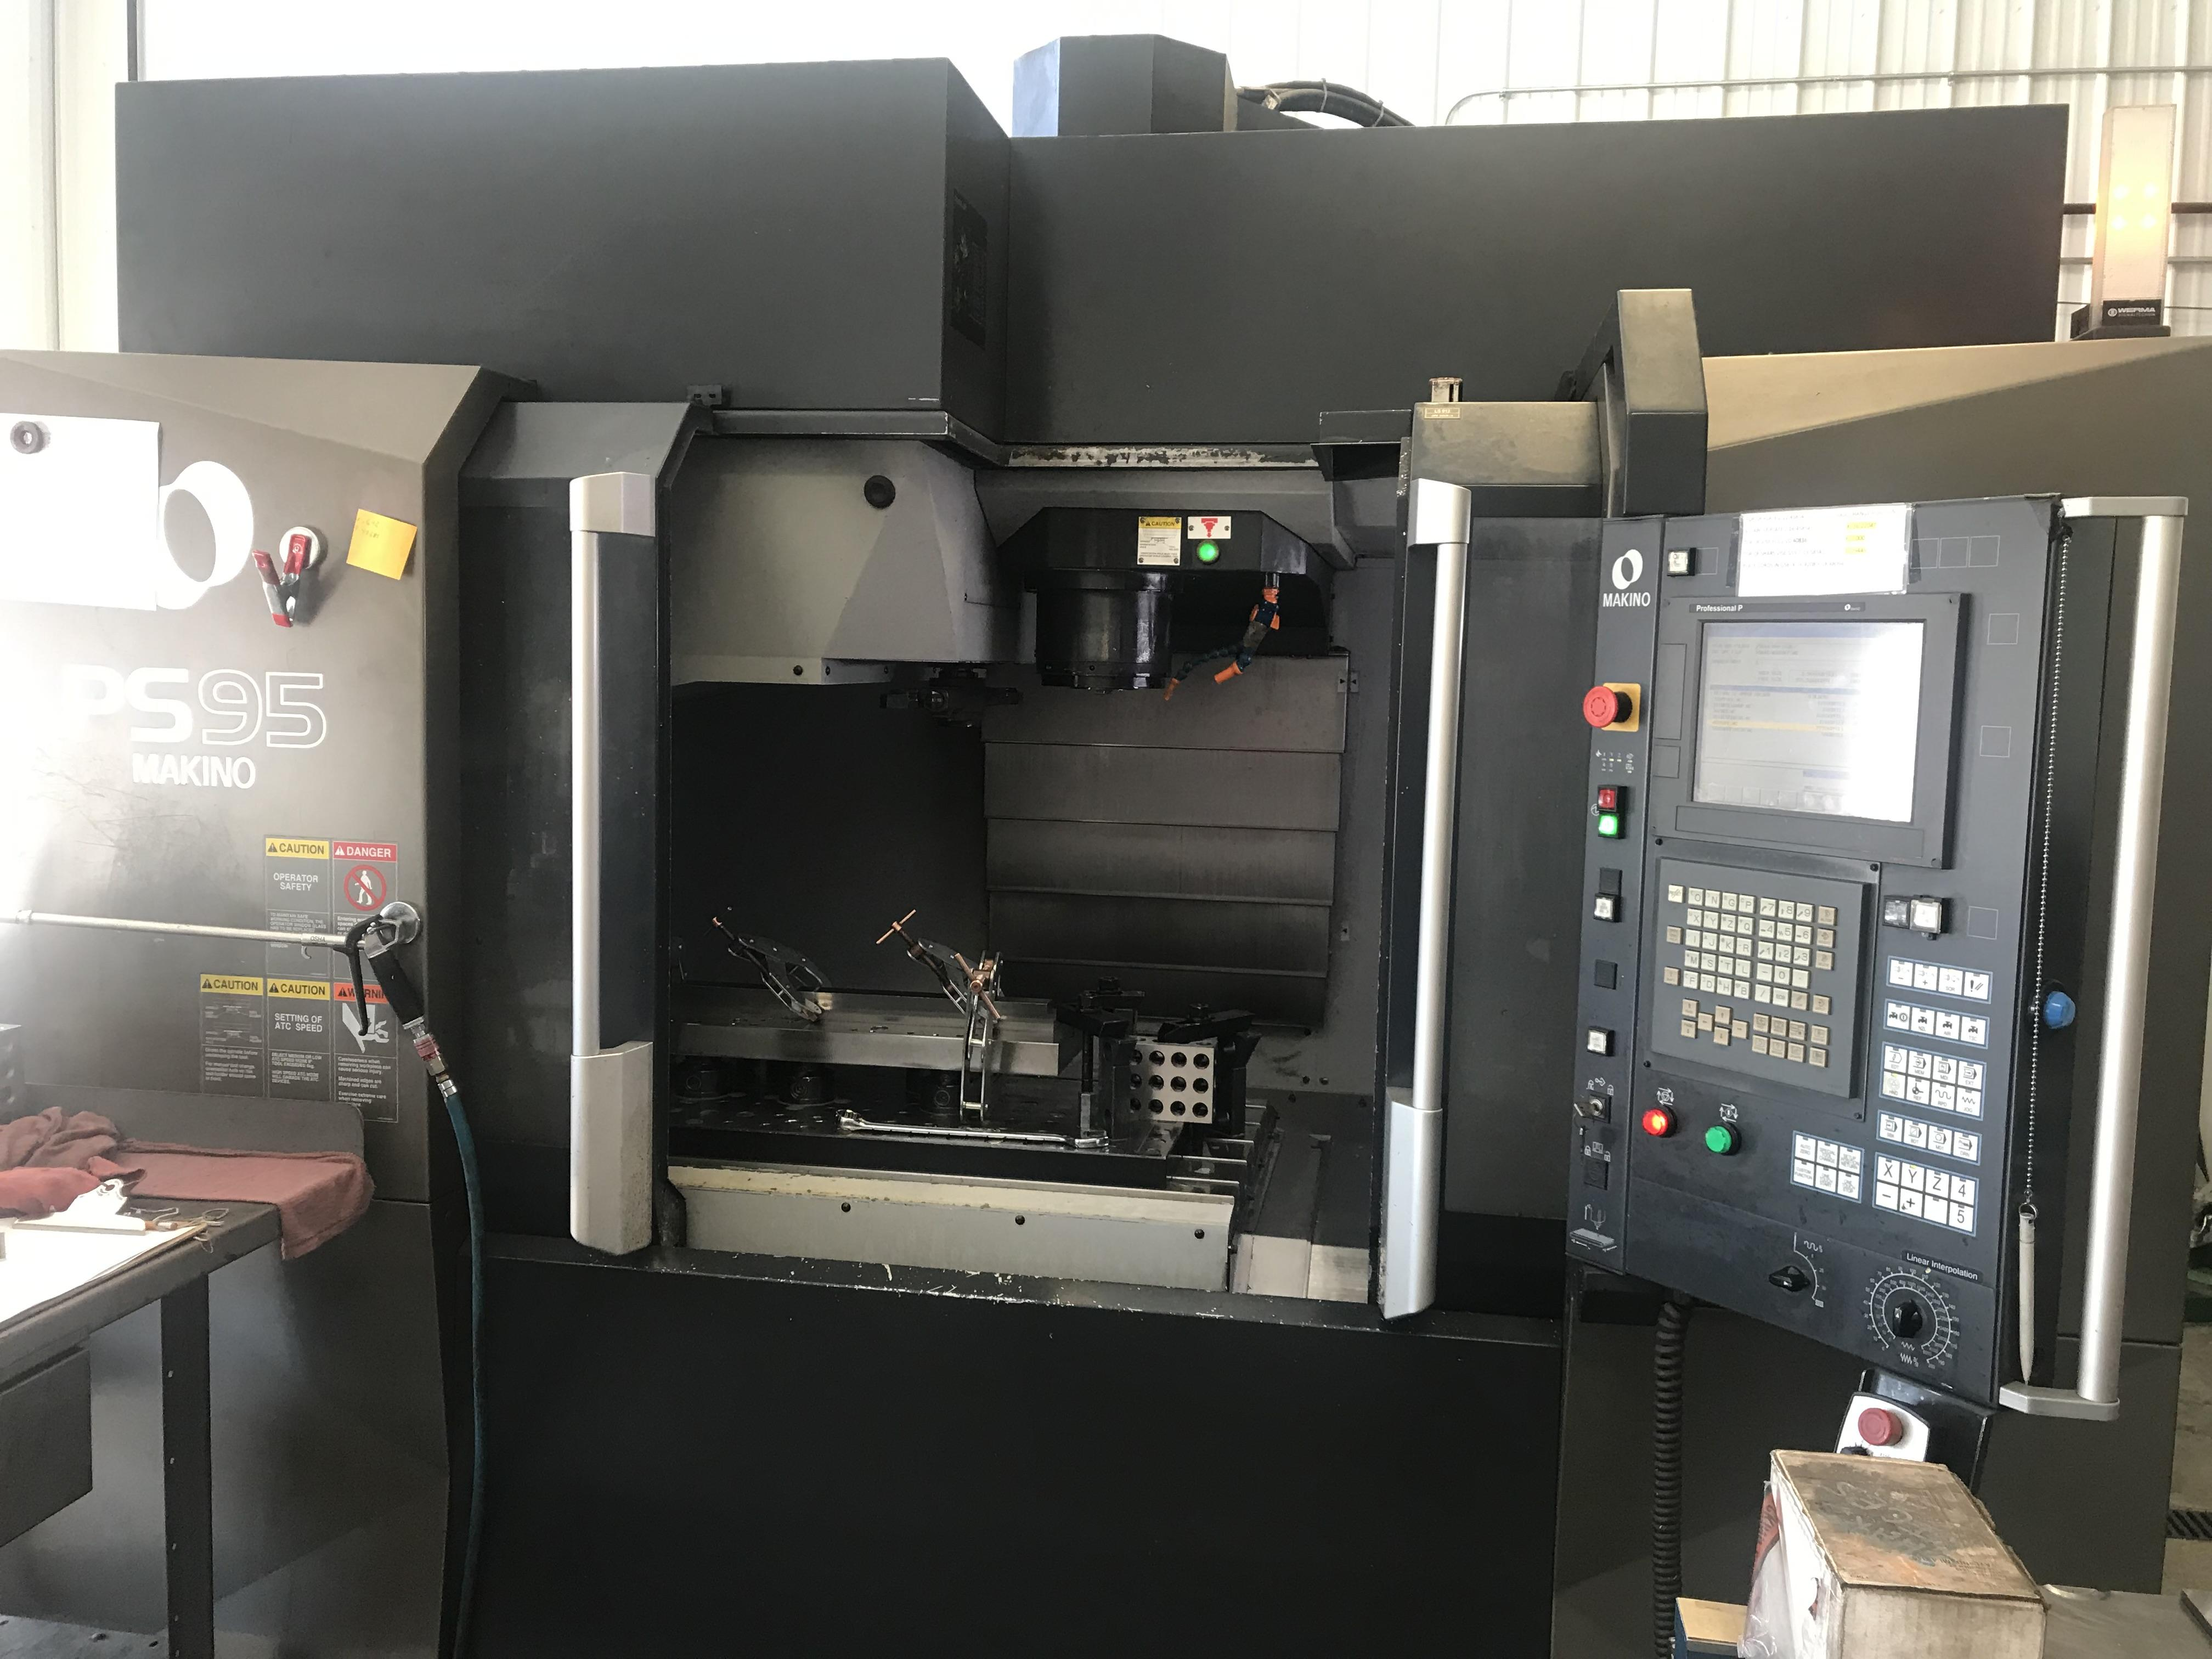 Makino PS95 CNC Vertical Machining Center, Fanuc Pro P Control, 36